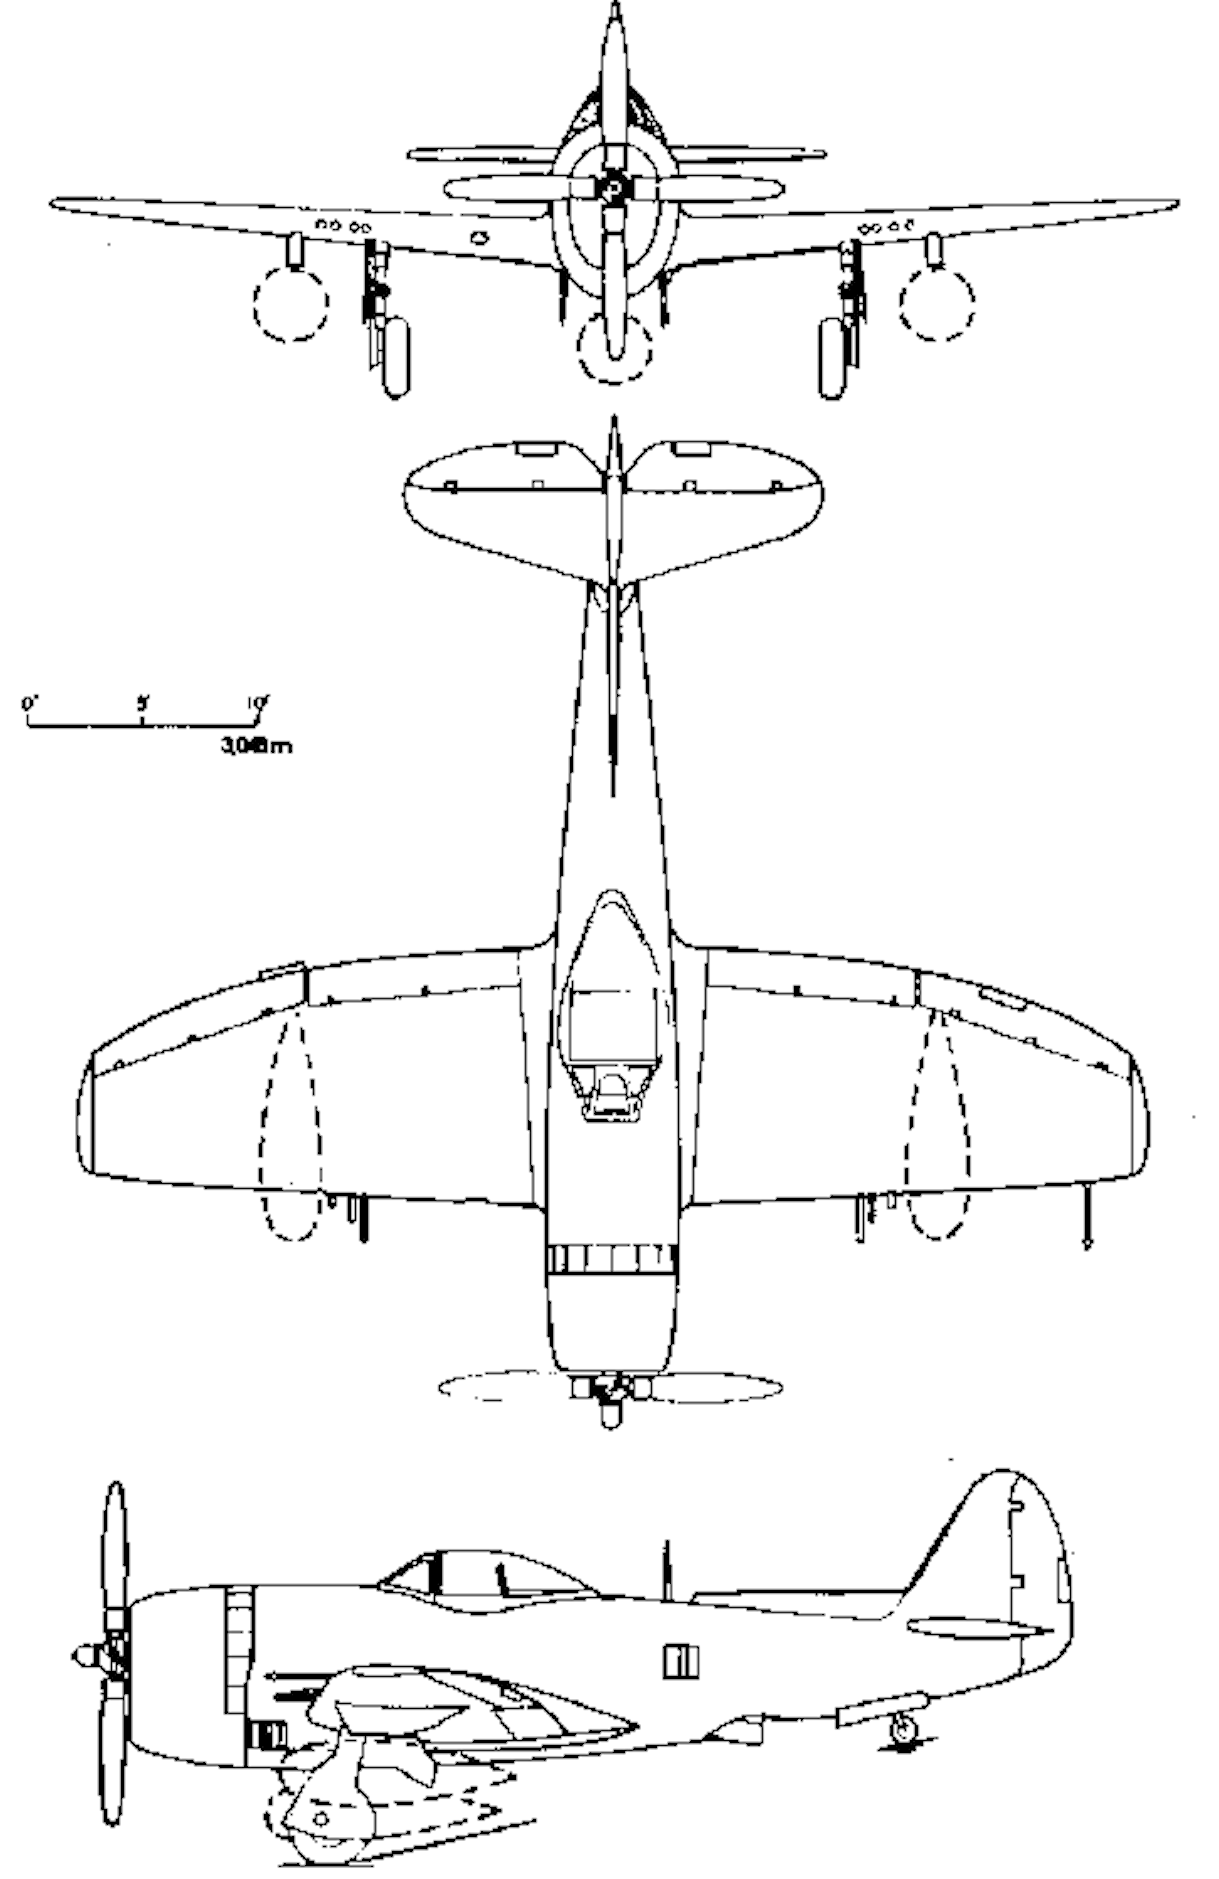 data/extra_images/2016/Republic_P-47N_3-side_drawings.PNG